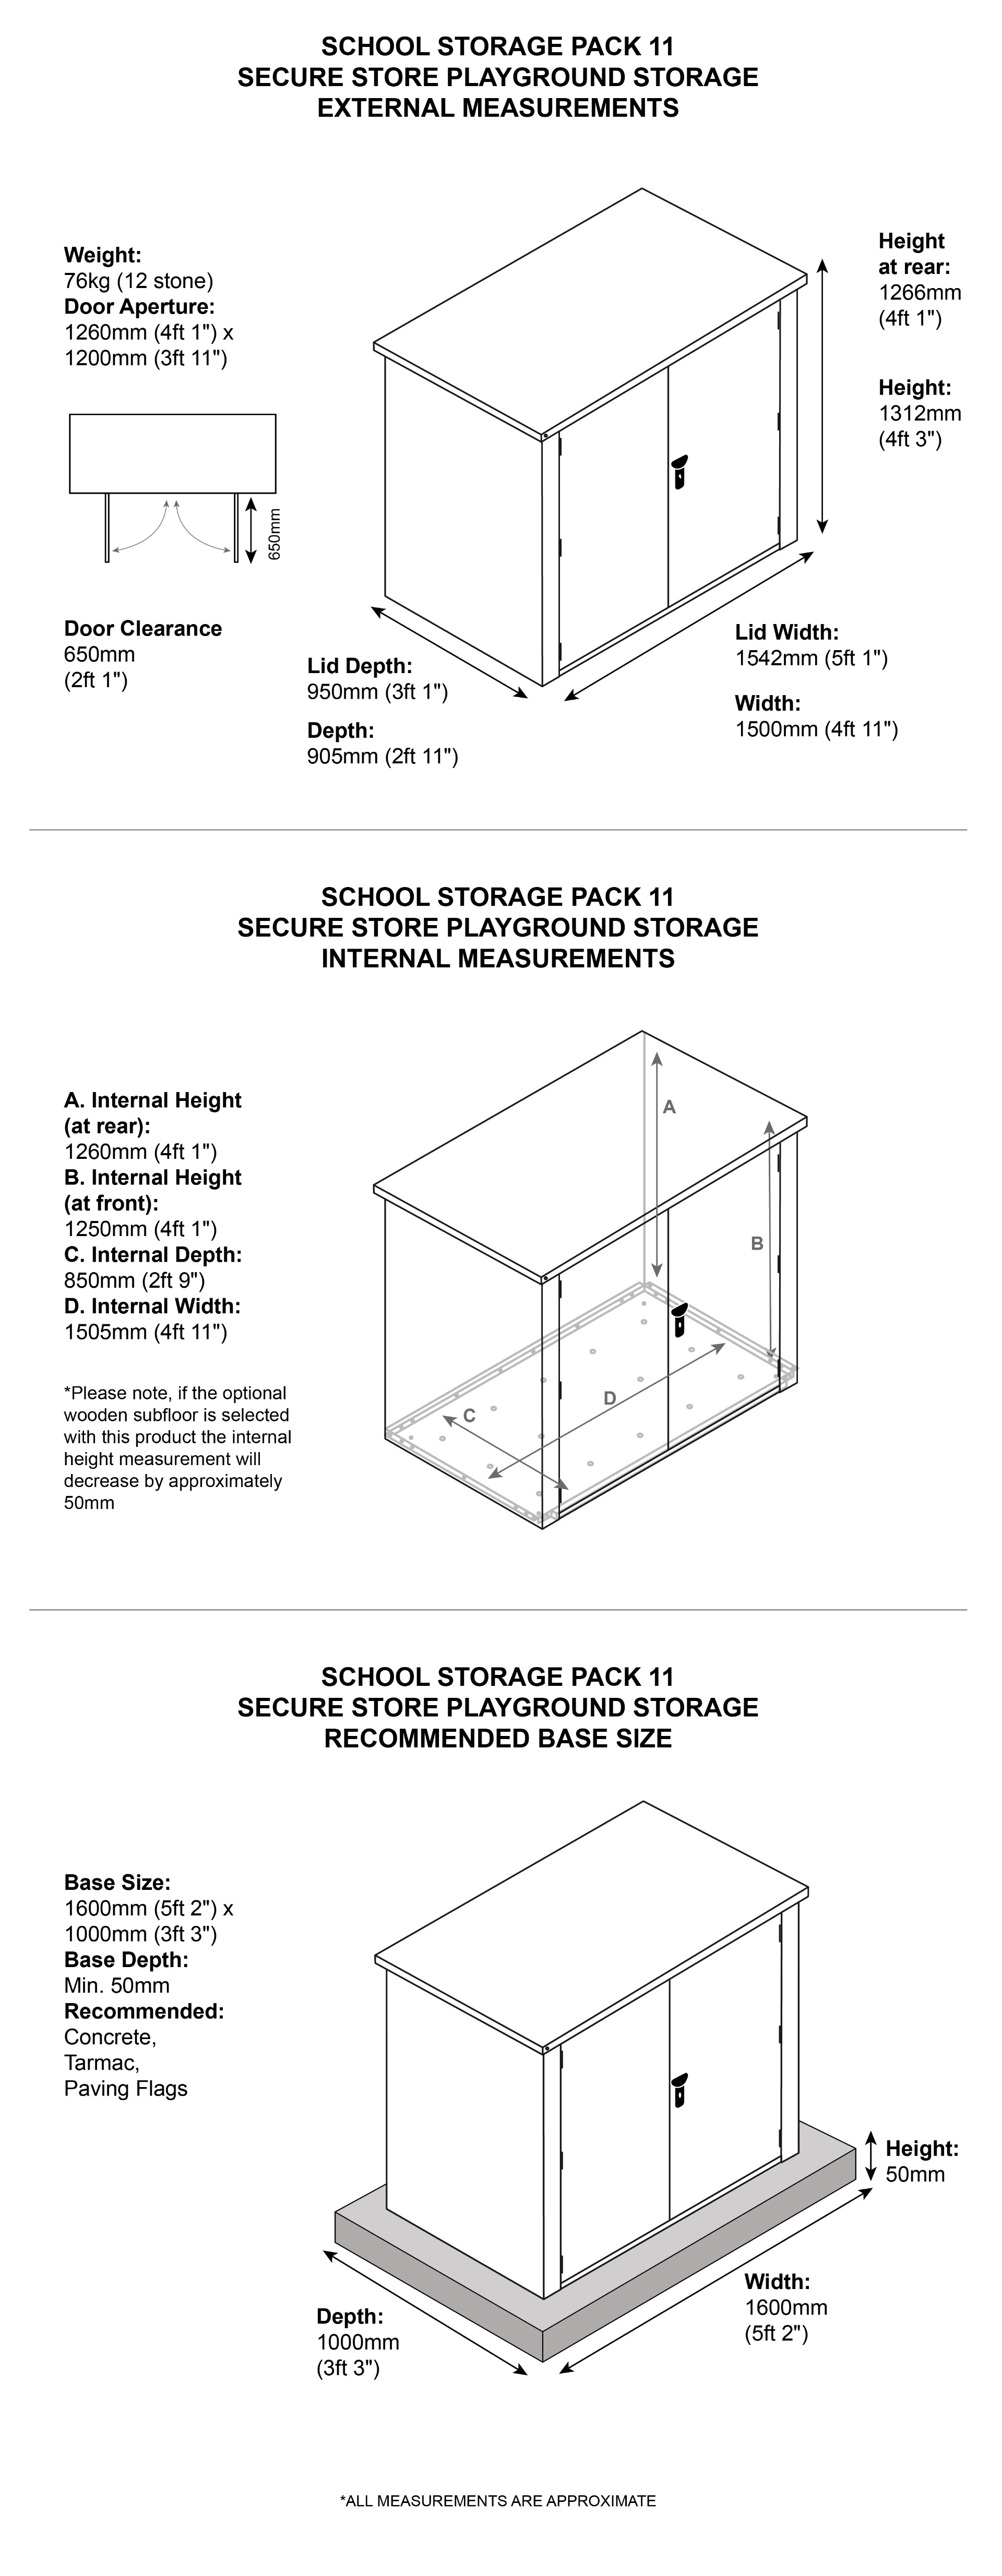 Nursery Storage dimensions